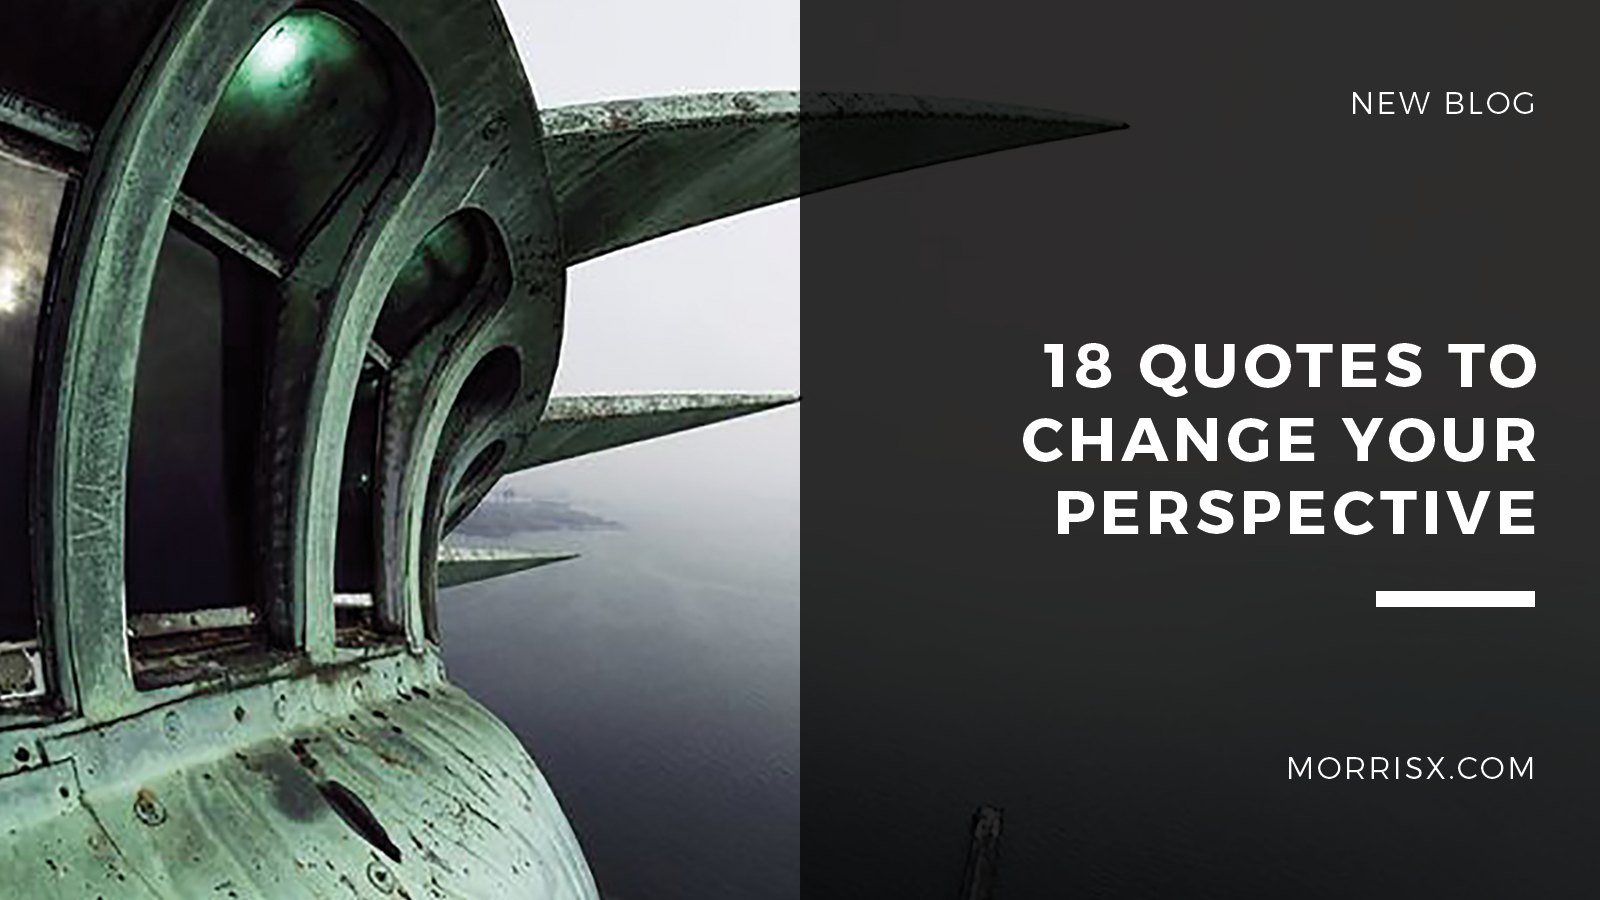 18 Quotes To Change Your Perspective